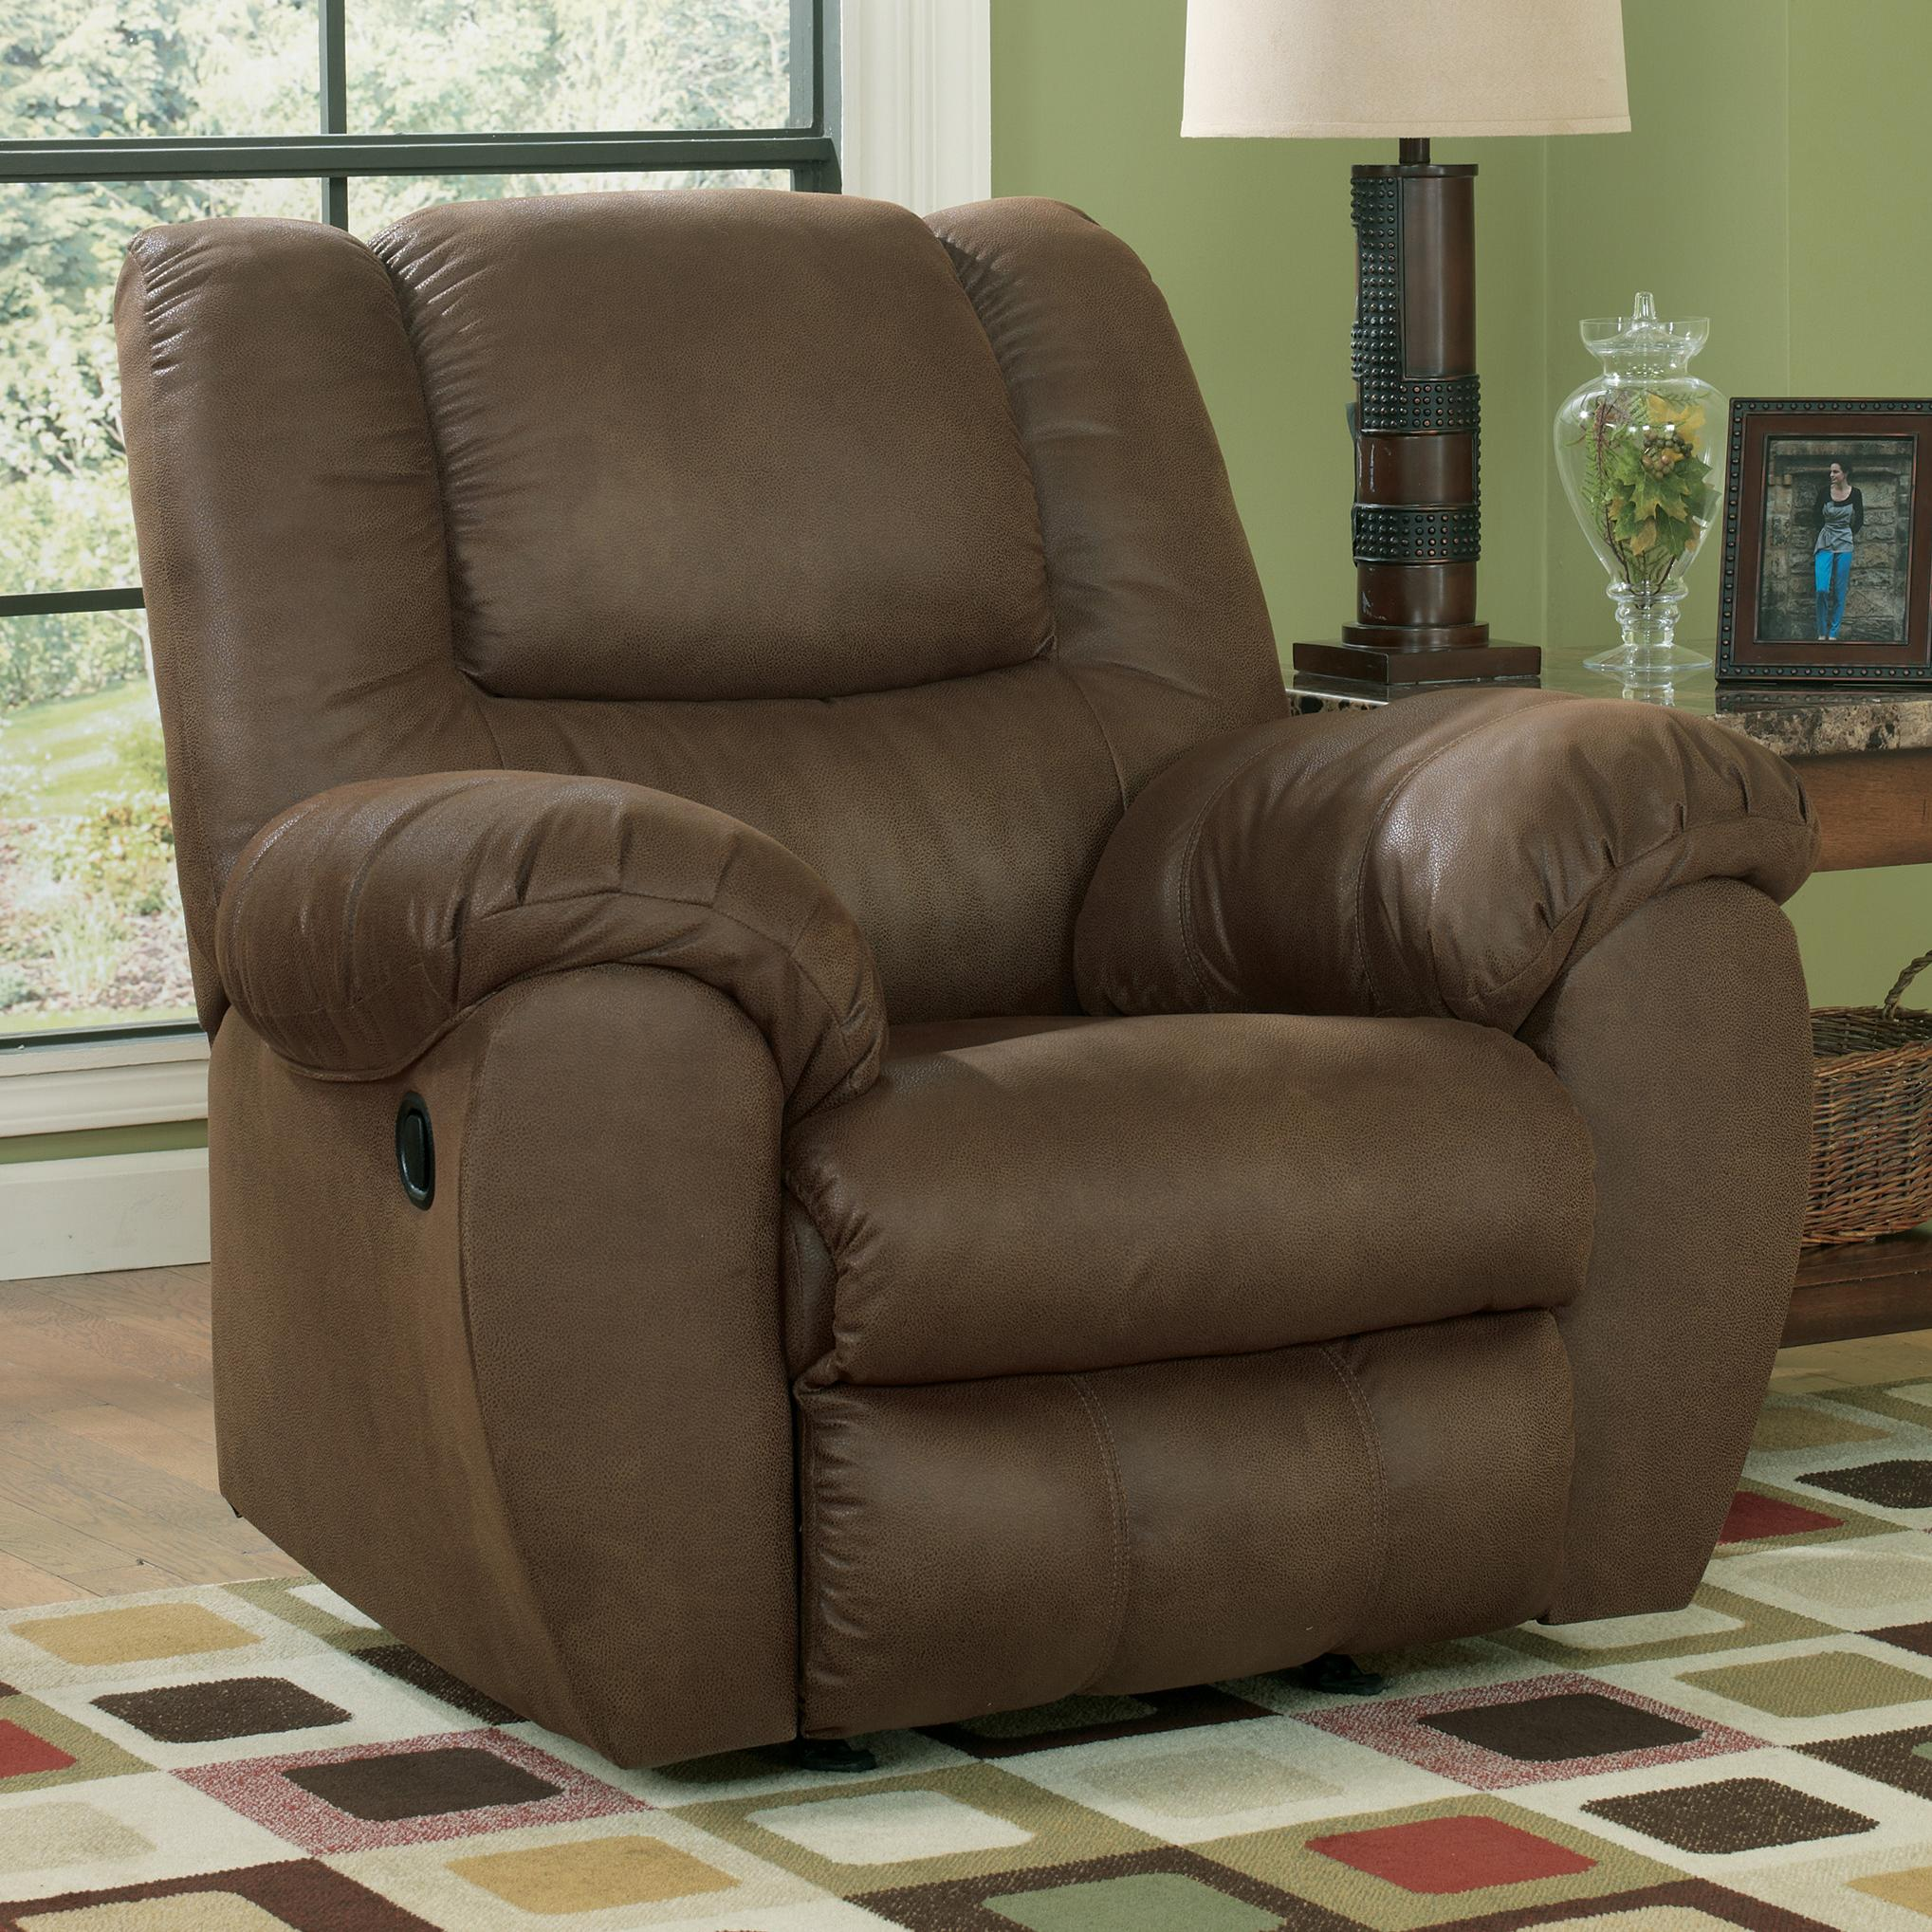 Benchcraft Quarterback - Canyon Rocker Recliner - Item Number: 3270125